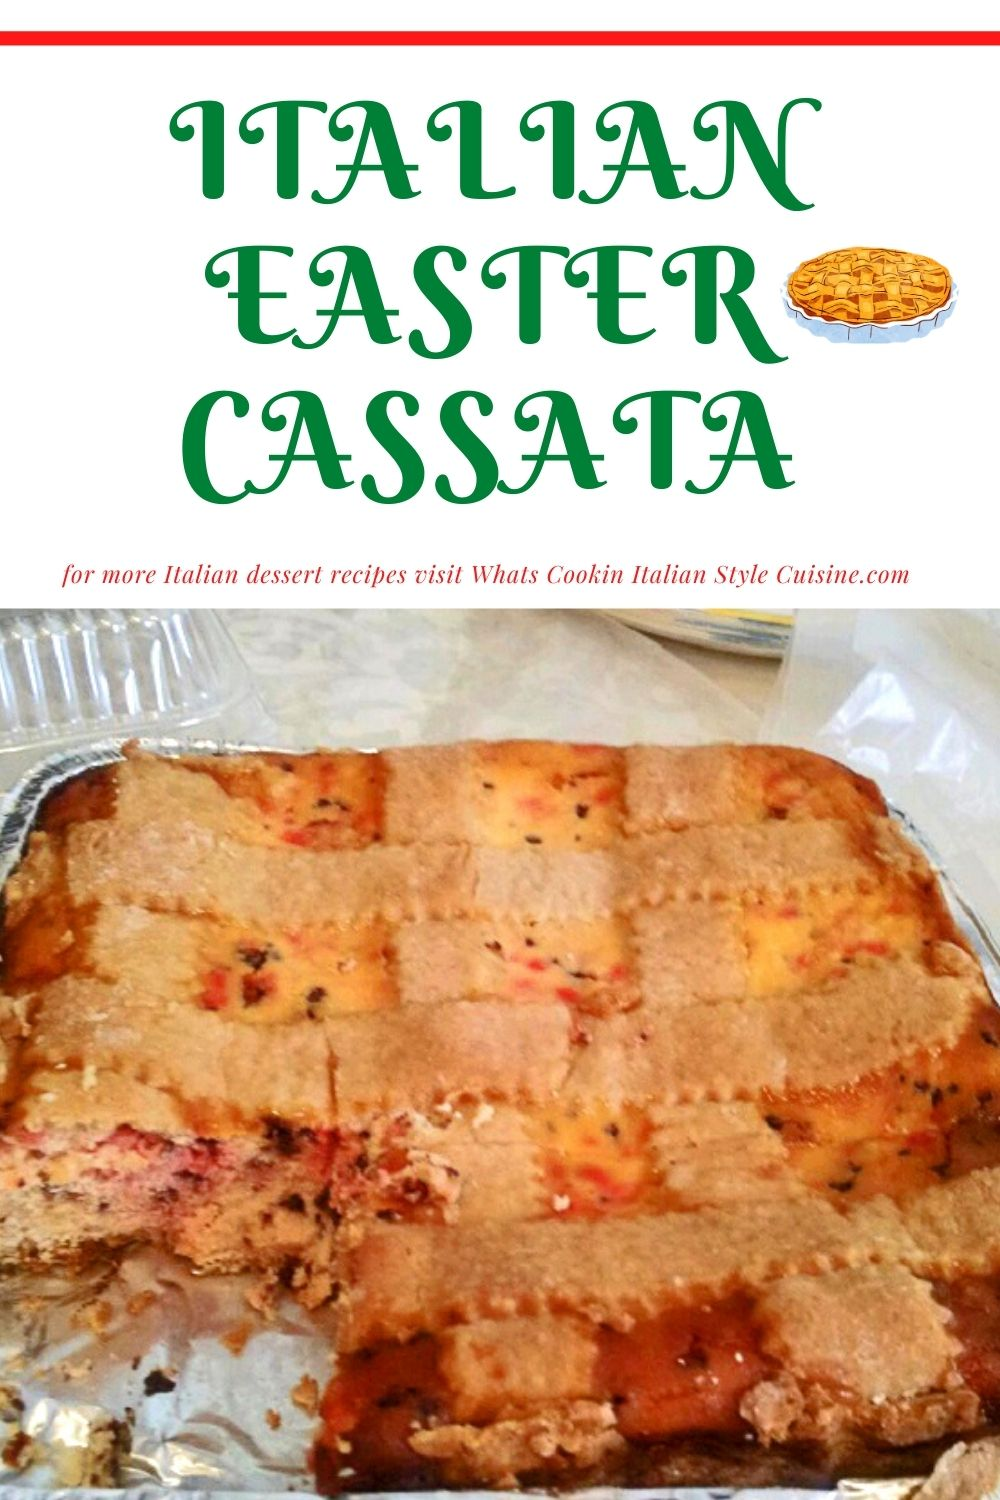 this is a pin for later on how to make Cassata